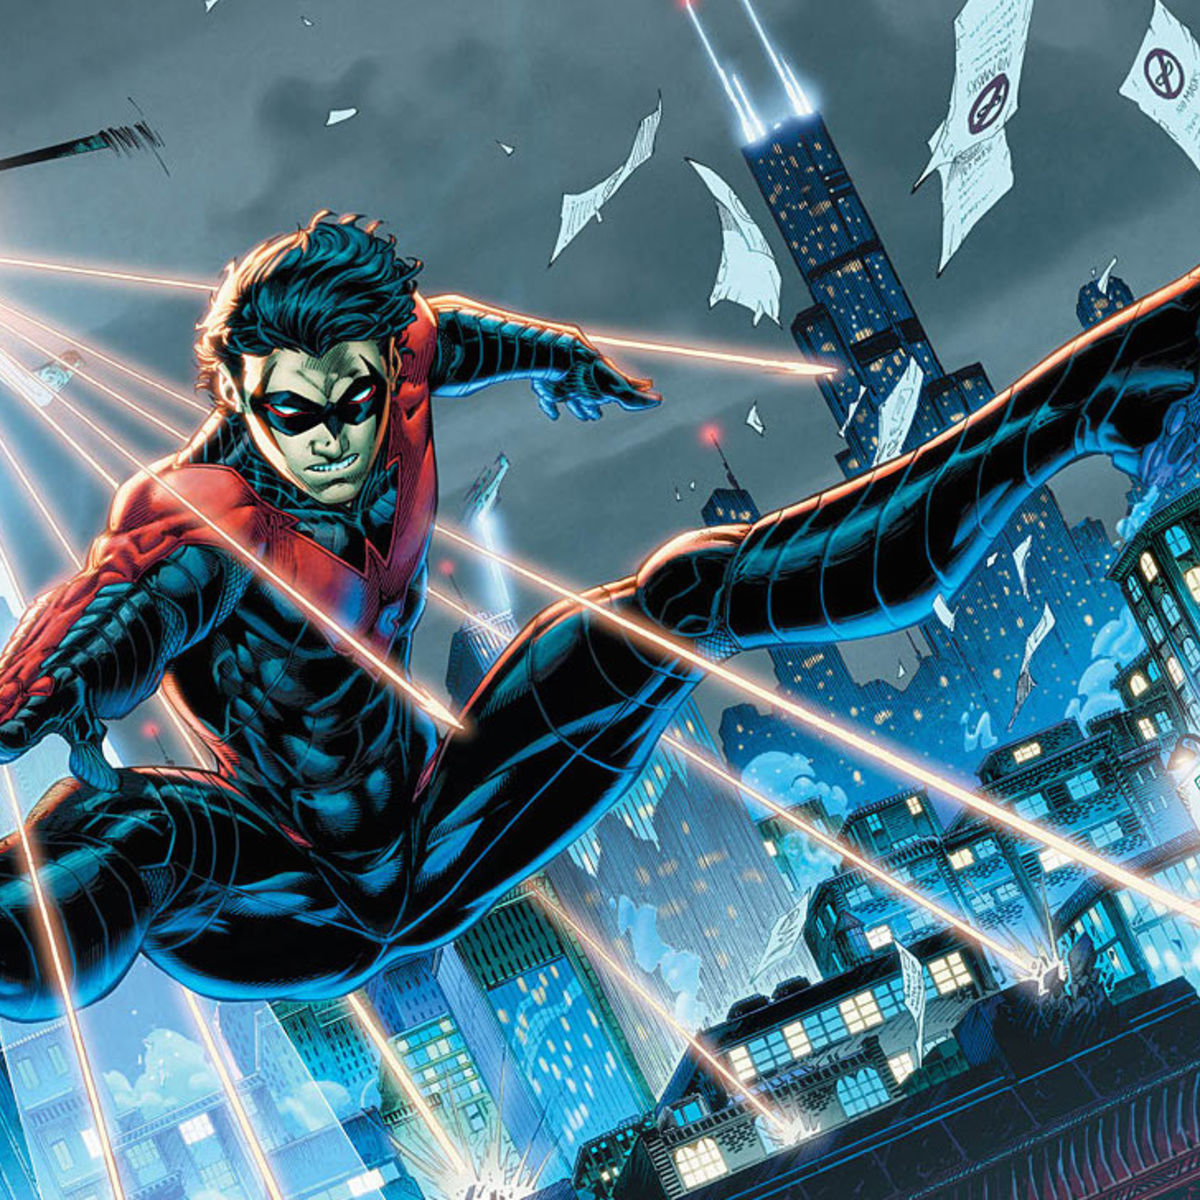 3061545-nightwinggunfire.jpg